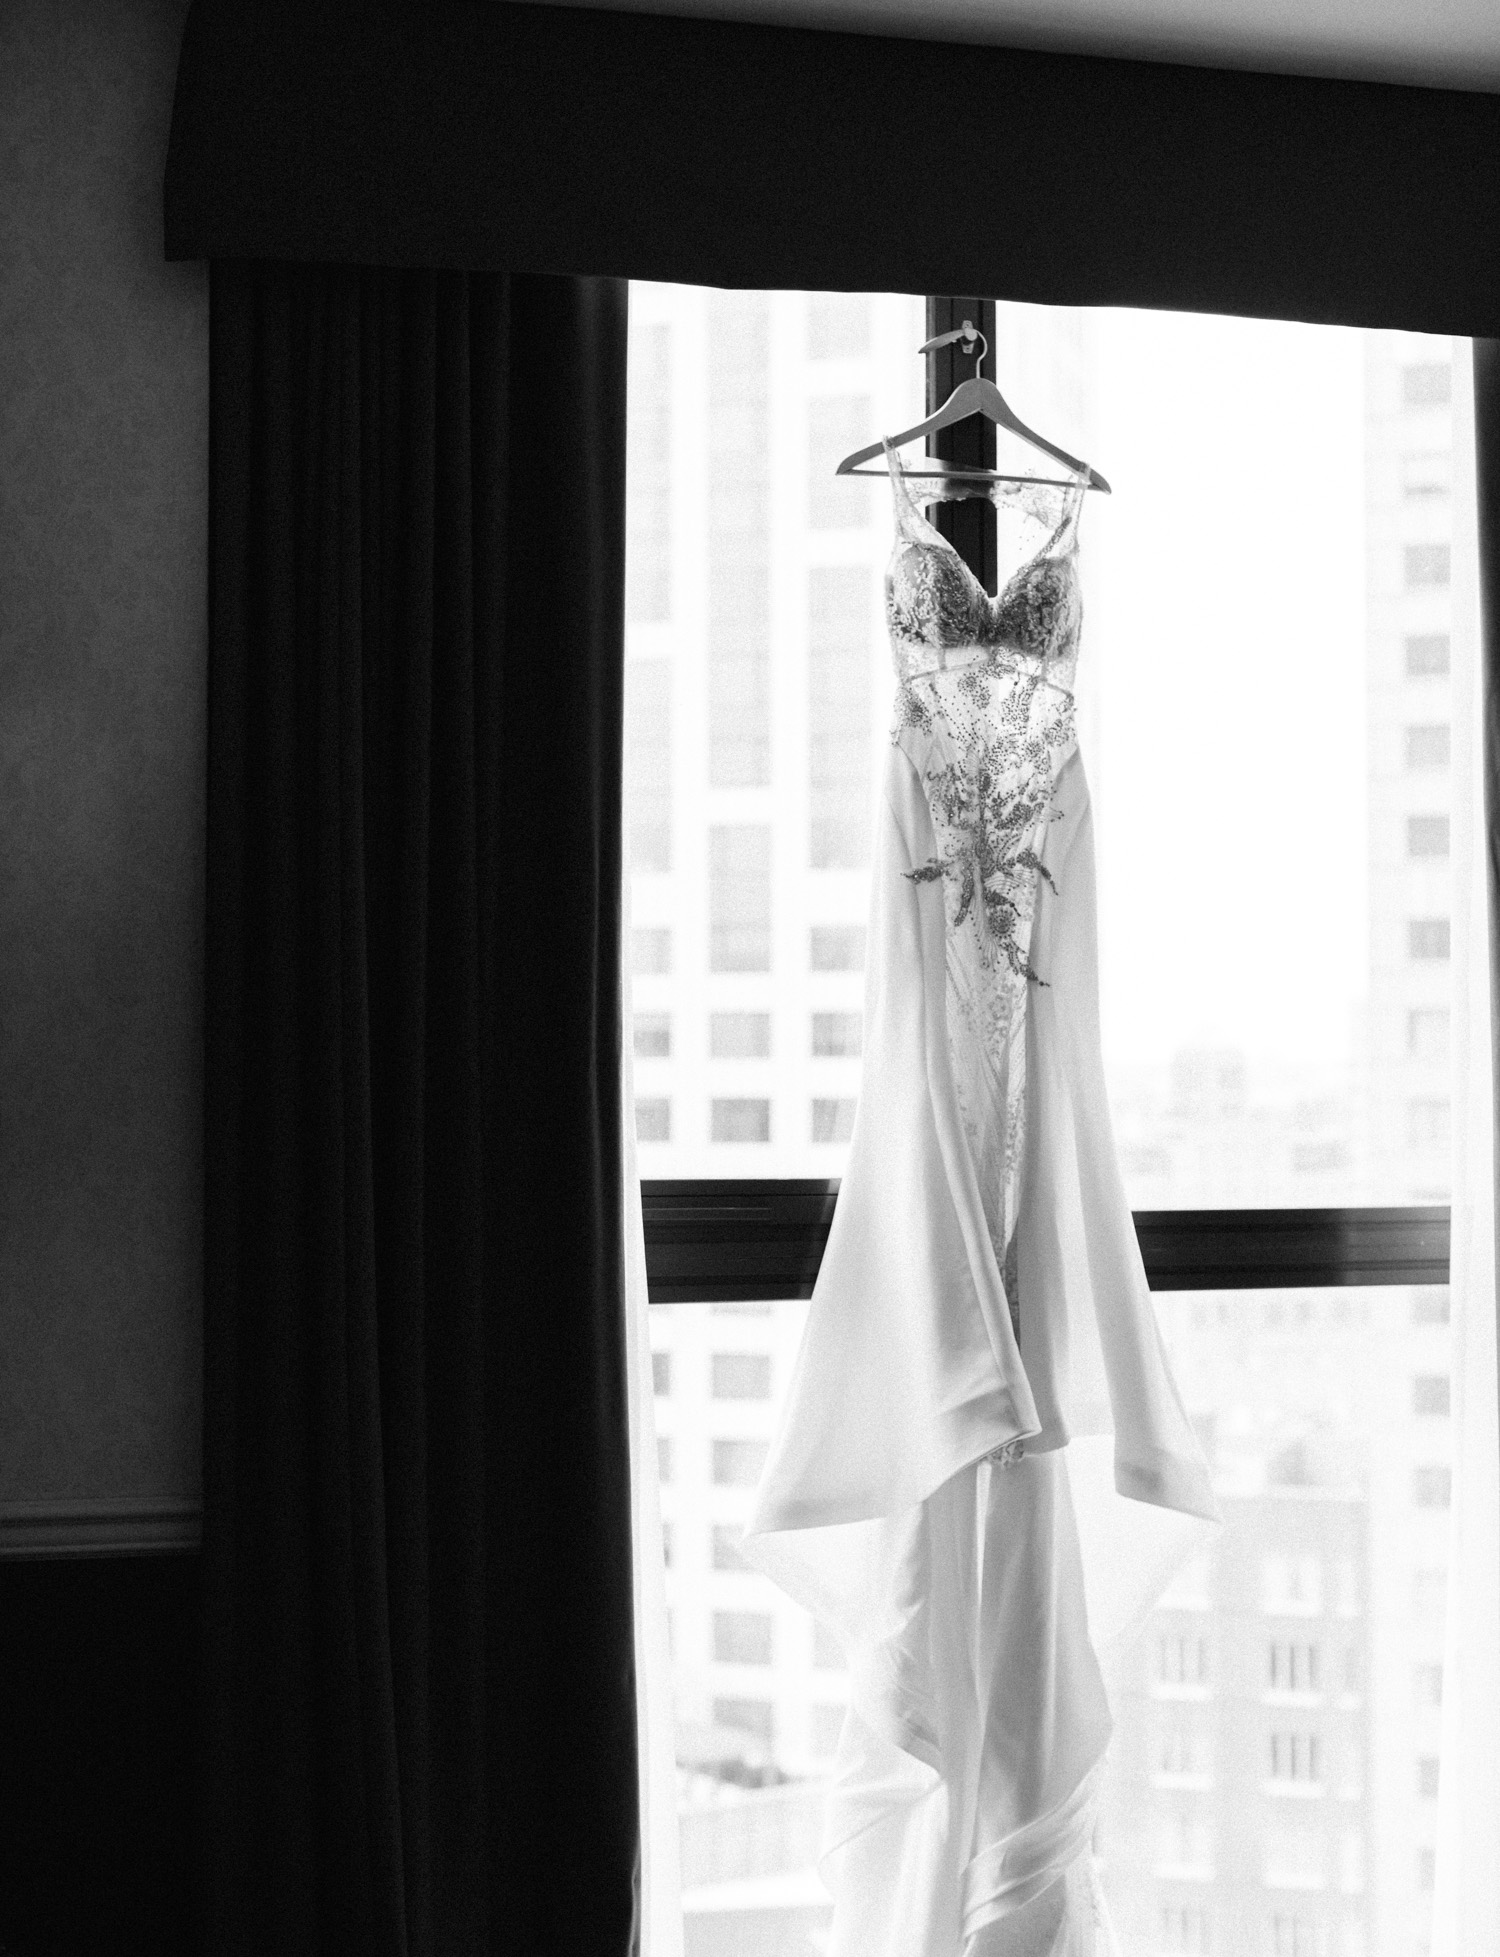 A fitted wedding dress with sheer bodice and intricate beading detail hangs in a Brooklyn, New York window